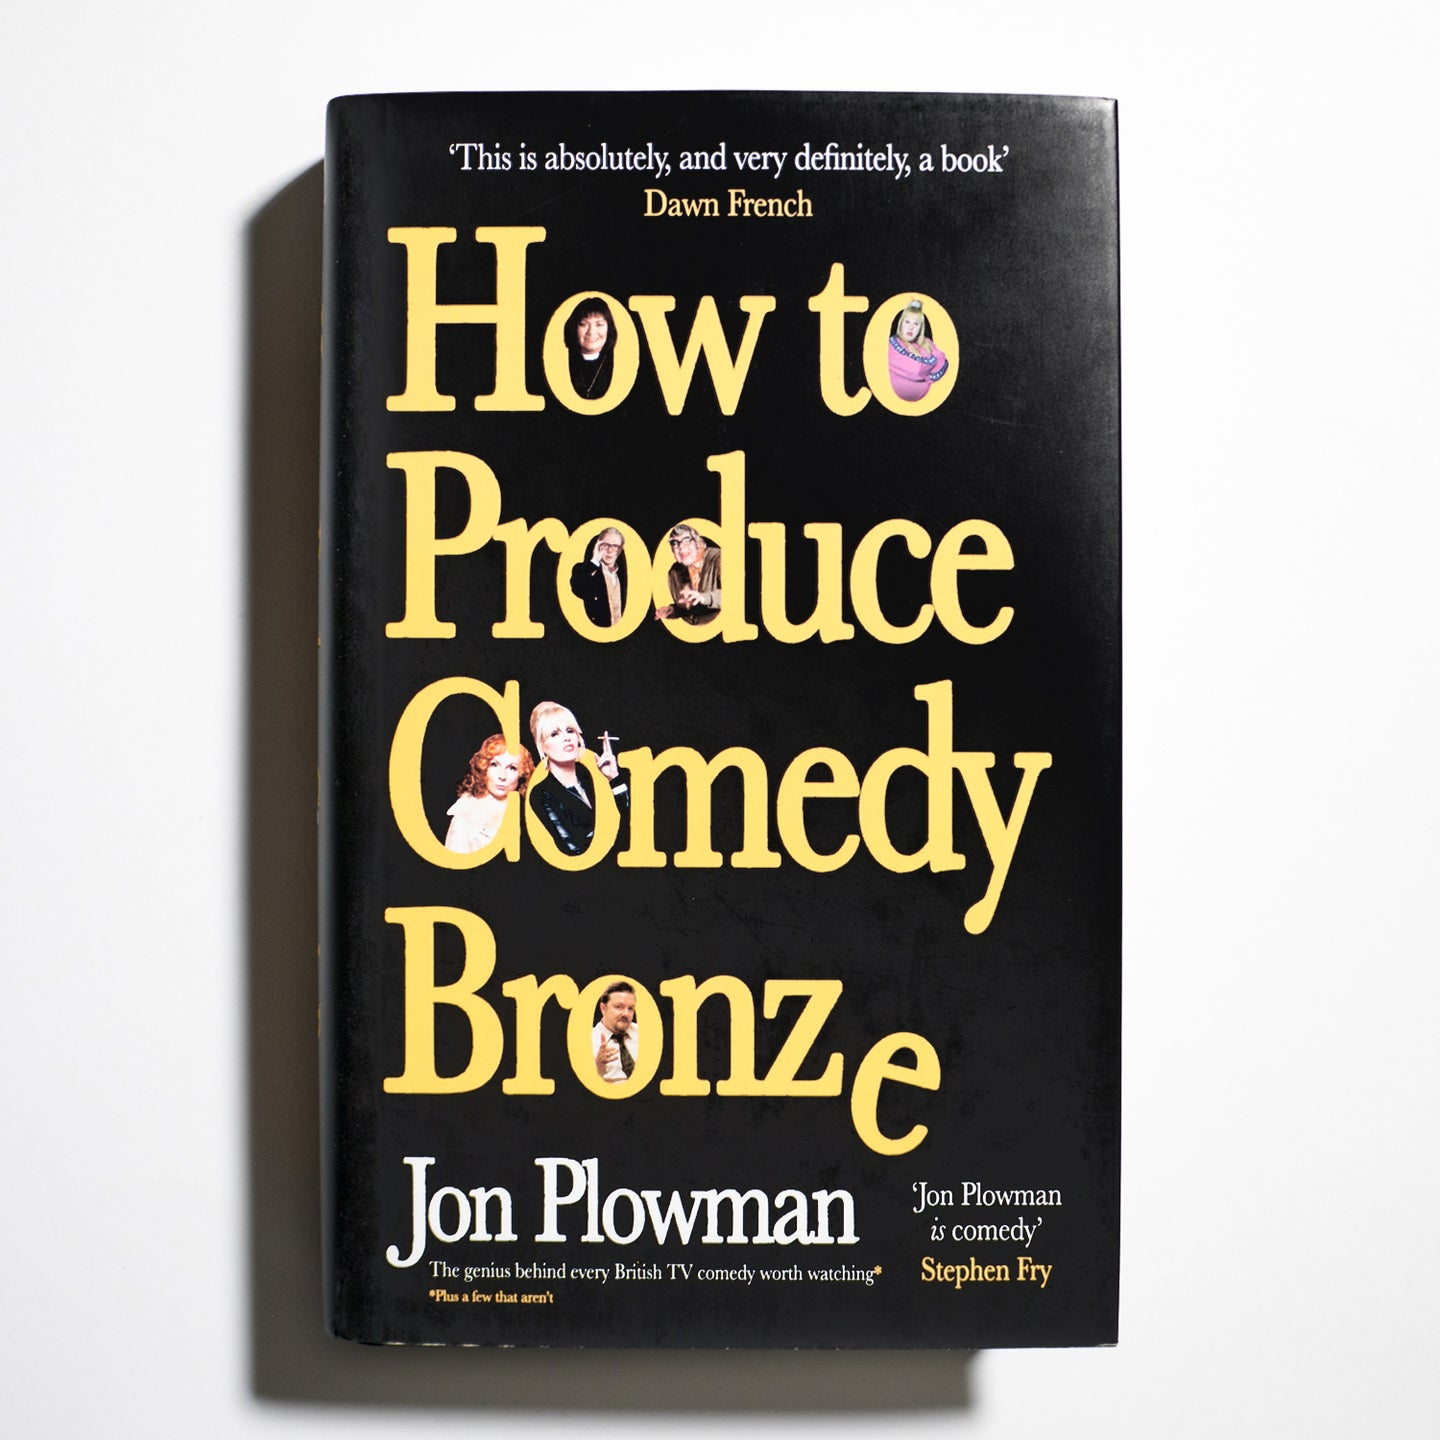 JON PLOWMAN | How to produce comedy bronze.